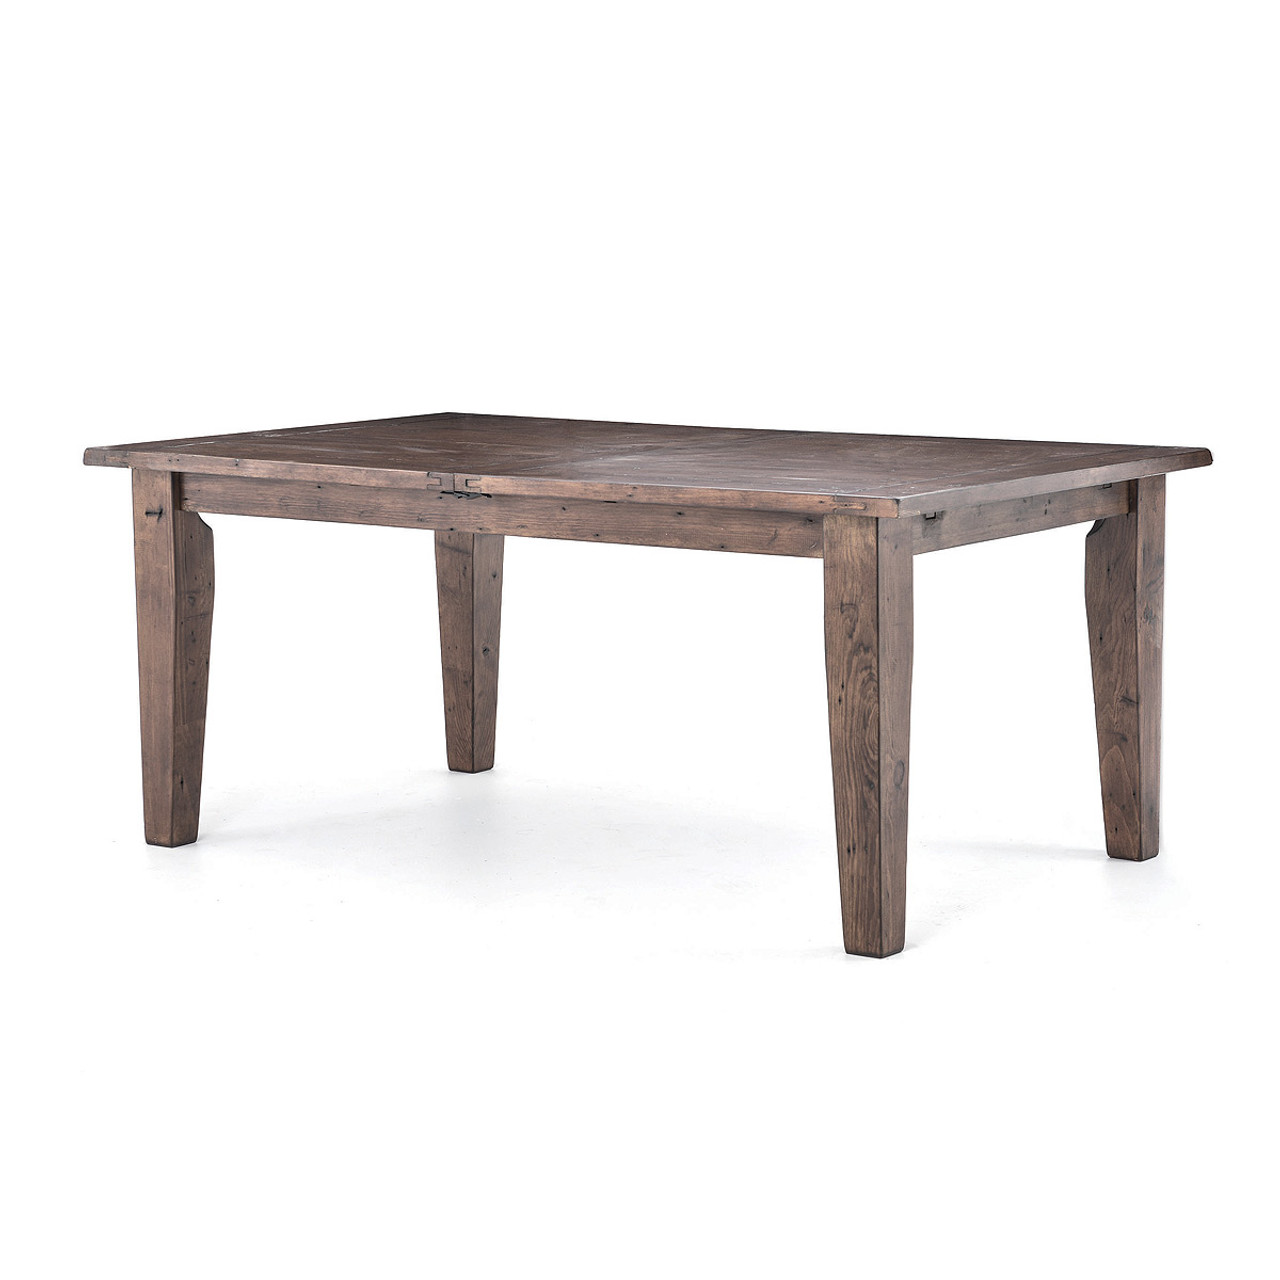 Coastal reclaimed wood extension dining table 96 zin home for Extension dining table